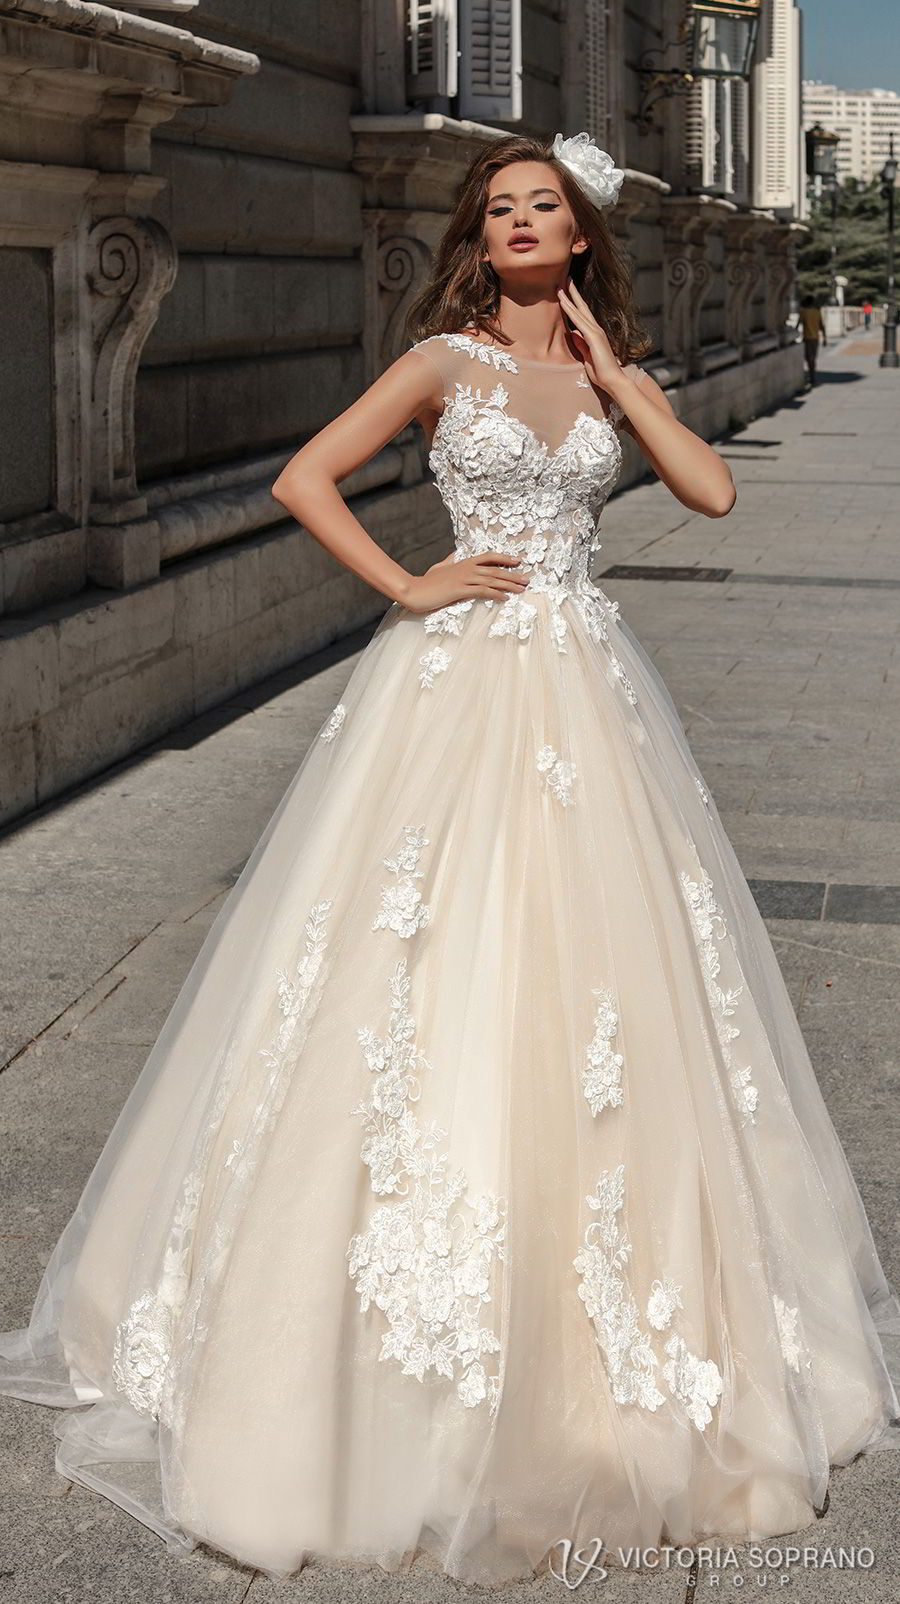 victoria soprano 2018 bridal sleeveless illusion jewel sweetheart neckline heavily embellished bodice romantic blush color a line wedding dress sheer lace back chapel train (selena) mv